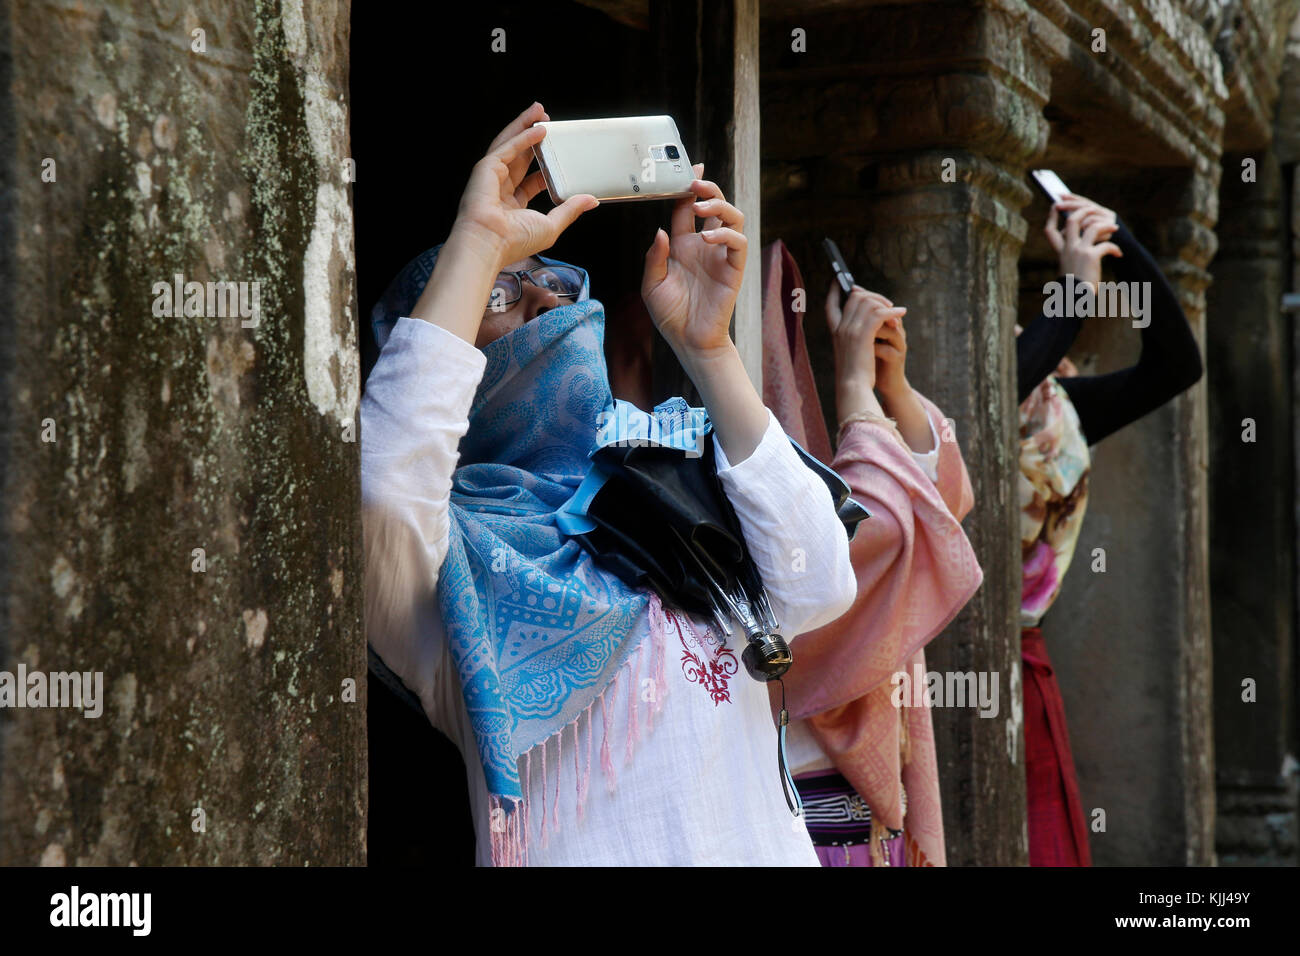 Angkor temple complex. Tourists taking photographs with cell phones. Cambodia. - Stock Image